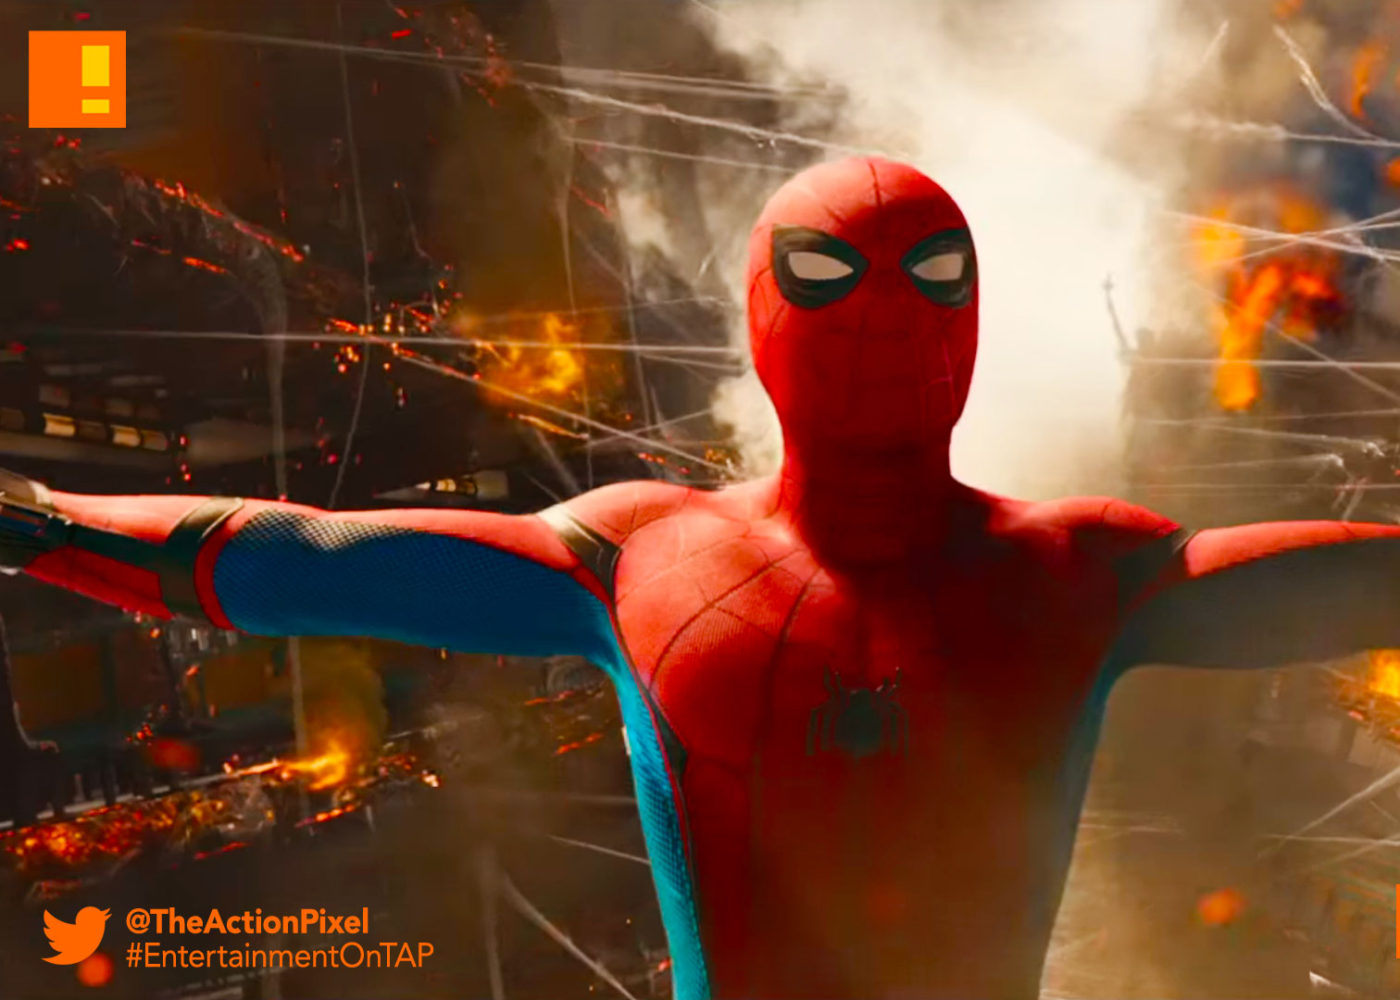 spiderman, poster spider-man: homecoming, spider-man, spiderman, homecoming, marvel, marvel comics, disney, marvel studios, sony, the action pixel, entertainment on tap, tom holland, spider-man, peter parker, spidey, new york, teaser, trailer,